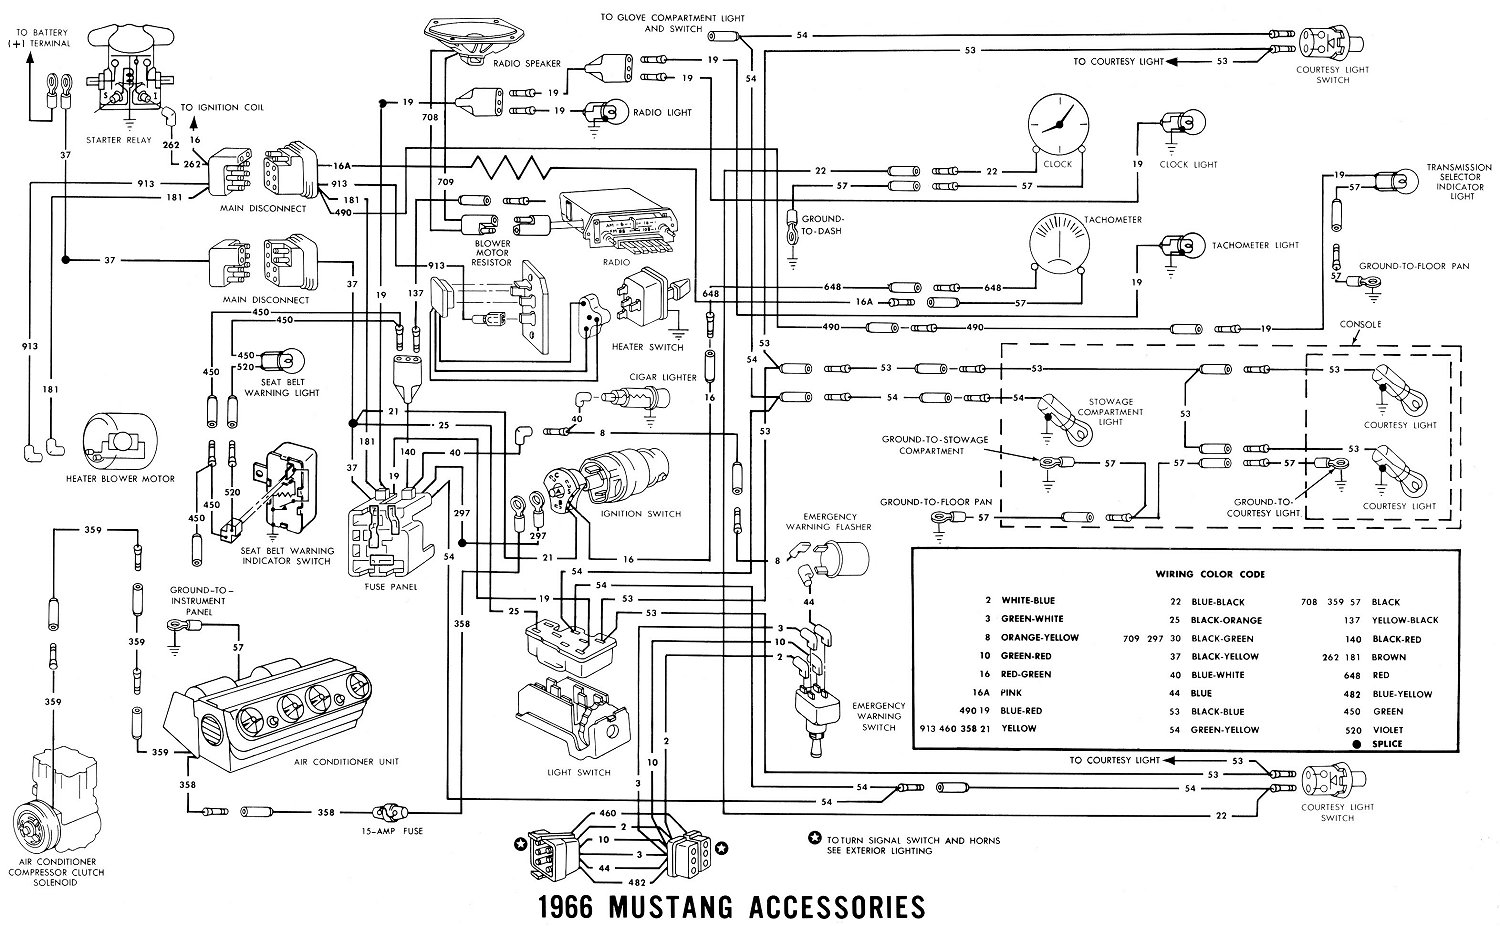 66 Mustang Engine Wiring Diagram - Wiring Diagram Data on 3 wire trailer light diagram, freightliner tail light diagram, 4 wire tail light diagram, o2 sensor wiring diagram, led tail light diagram, universal tail light combo diagram, 5 wire tail light diagram, ford tail light wiring diagram, grote tail light wire diagram, chevy tail light wiring diagram, turn signal wiring diagram, relay wiring diagram,